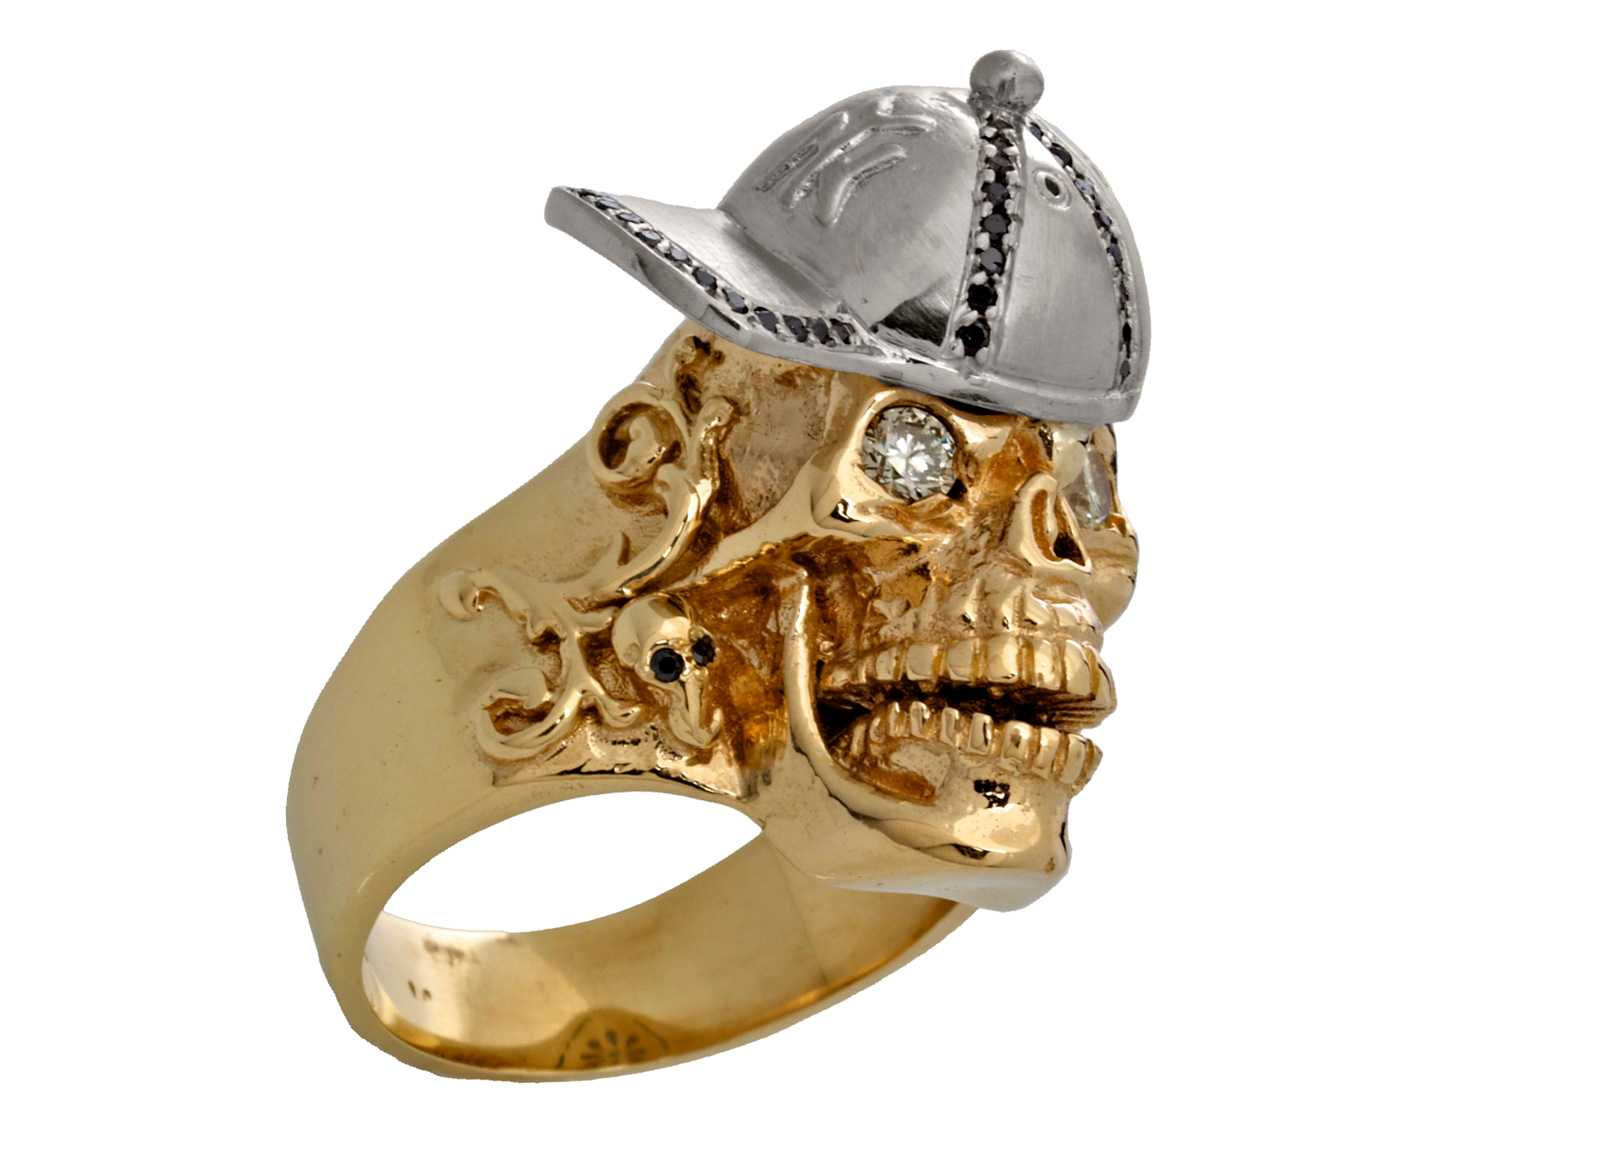 6a6de1035d5 RG1002-A The Player Skull Ring (Front Right Side View) in Yellow and